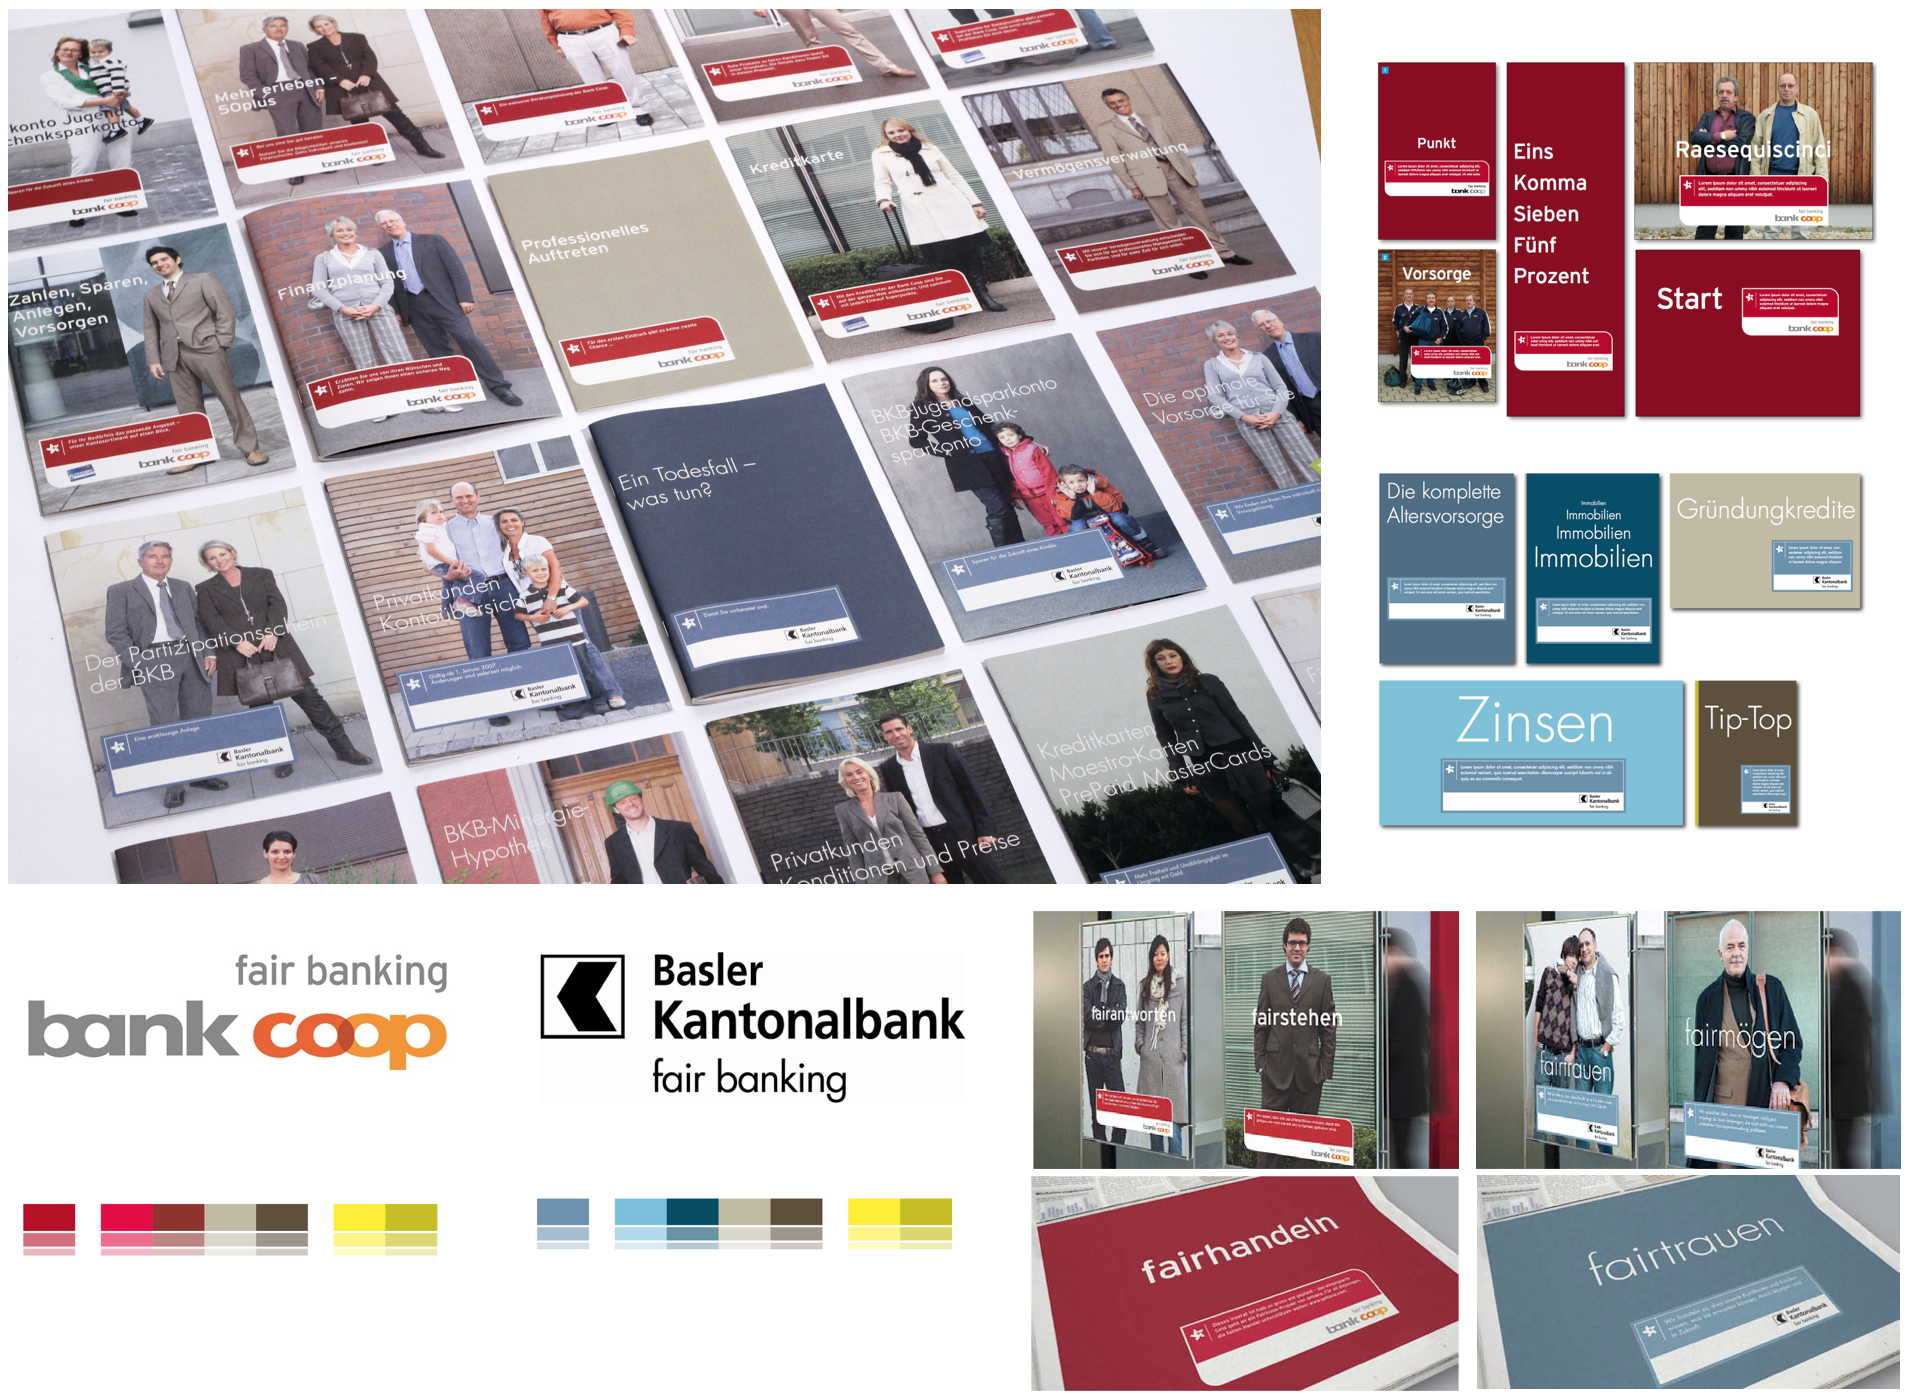 BKB & Bank COOP / fair banking